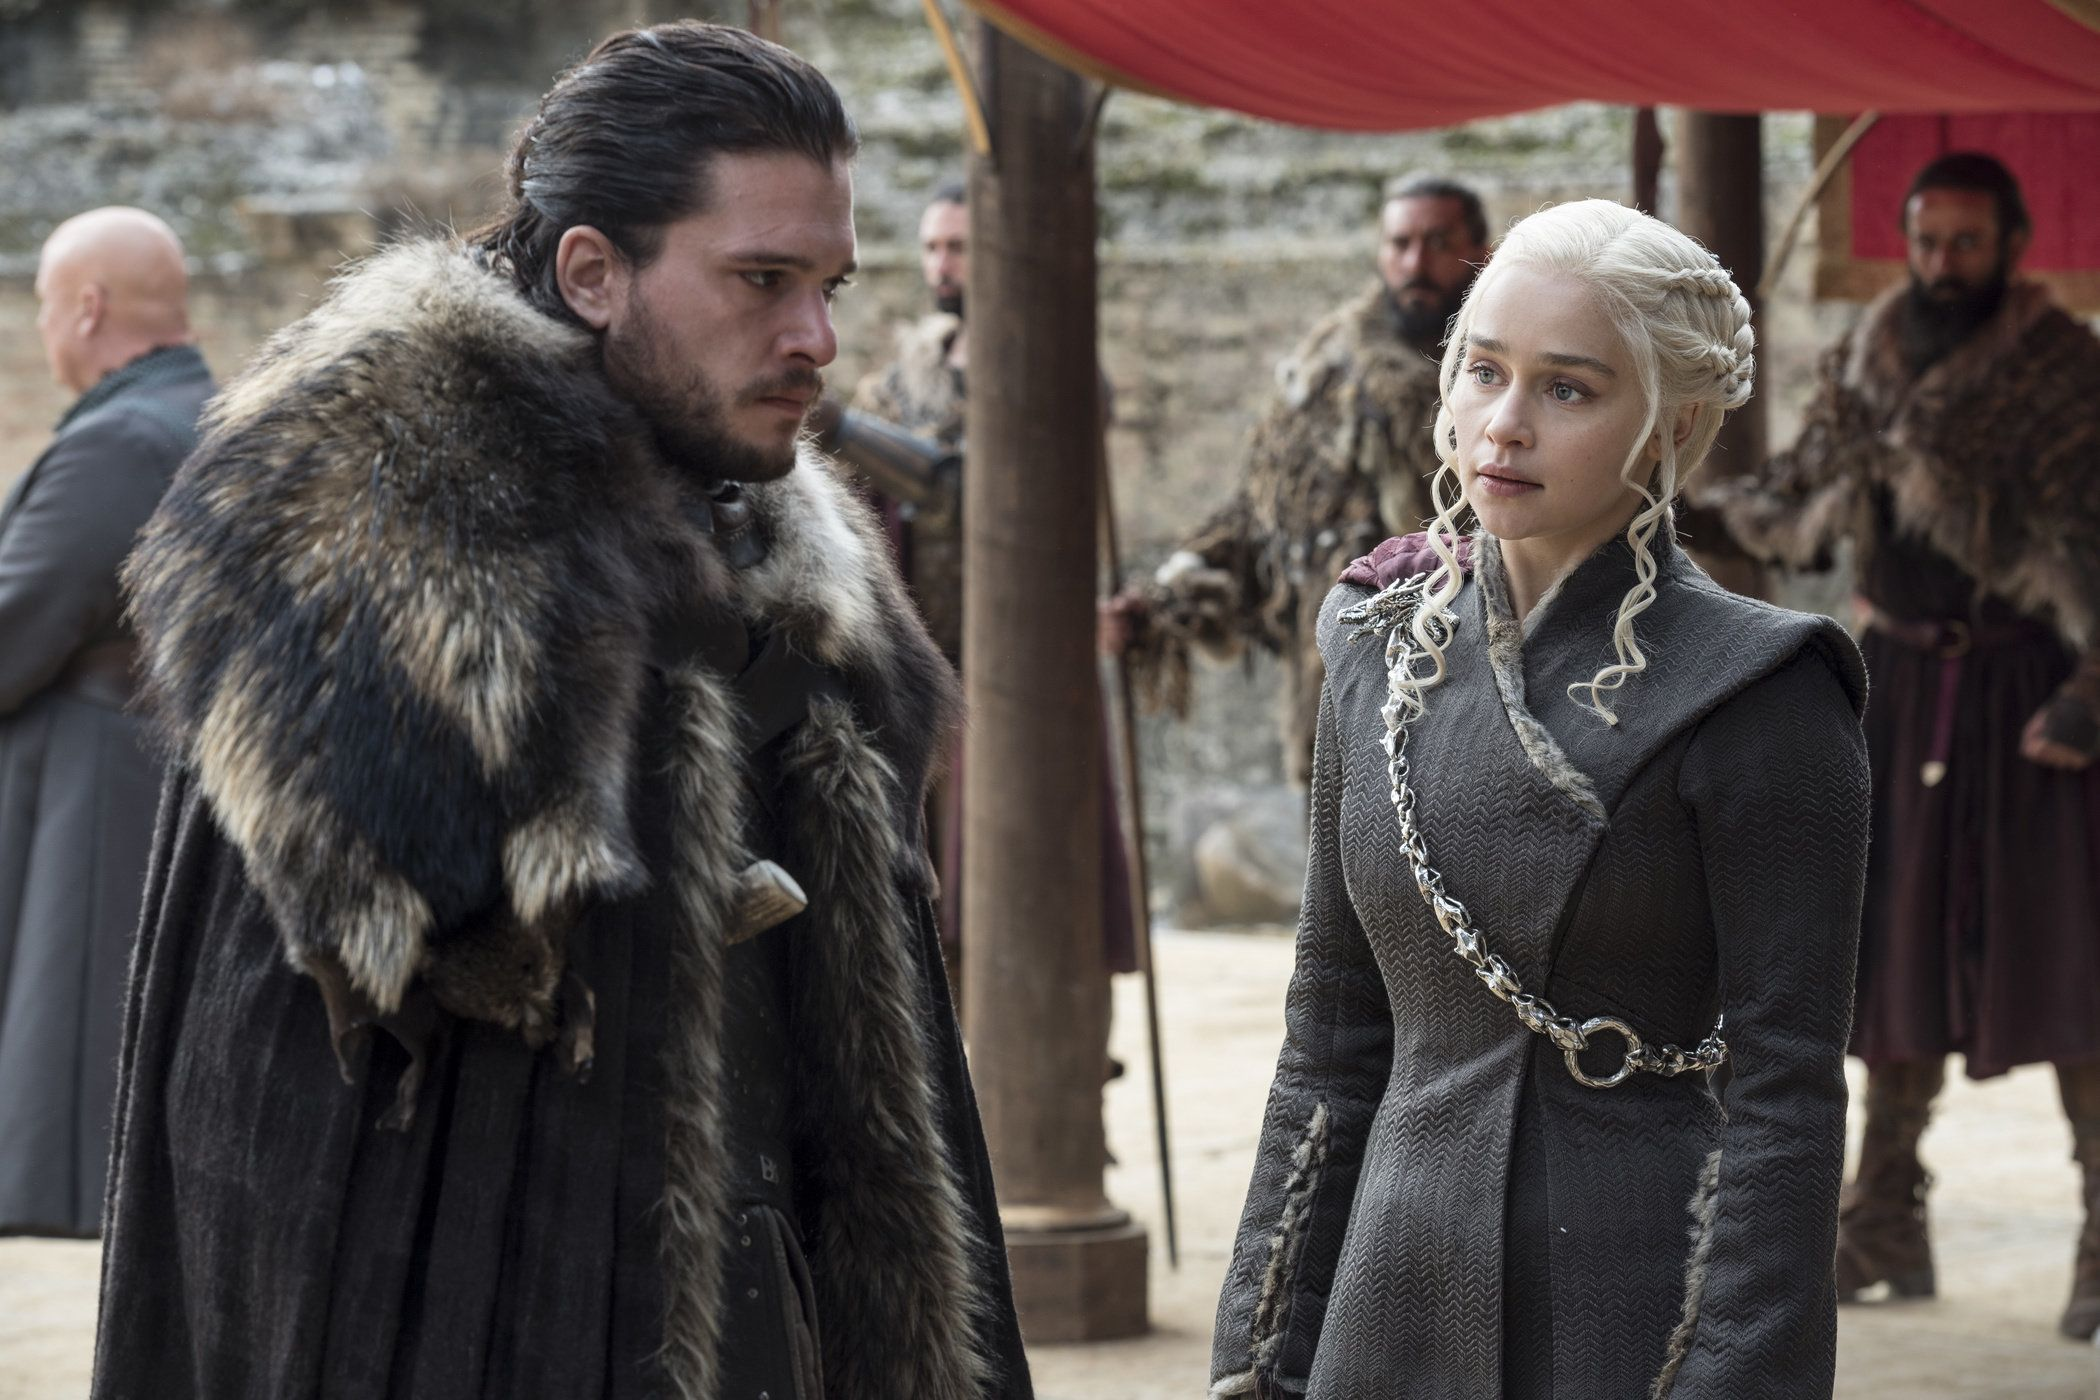 First 'Game of Thrones' Season 8 Footage Glimpsed in HBO Promo